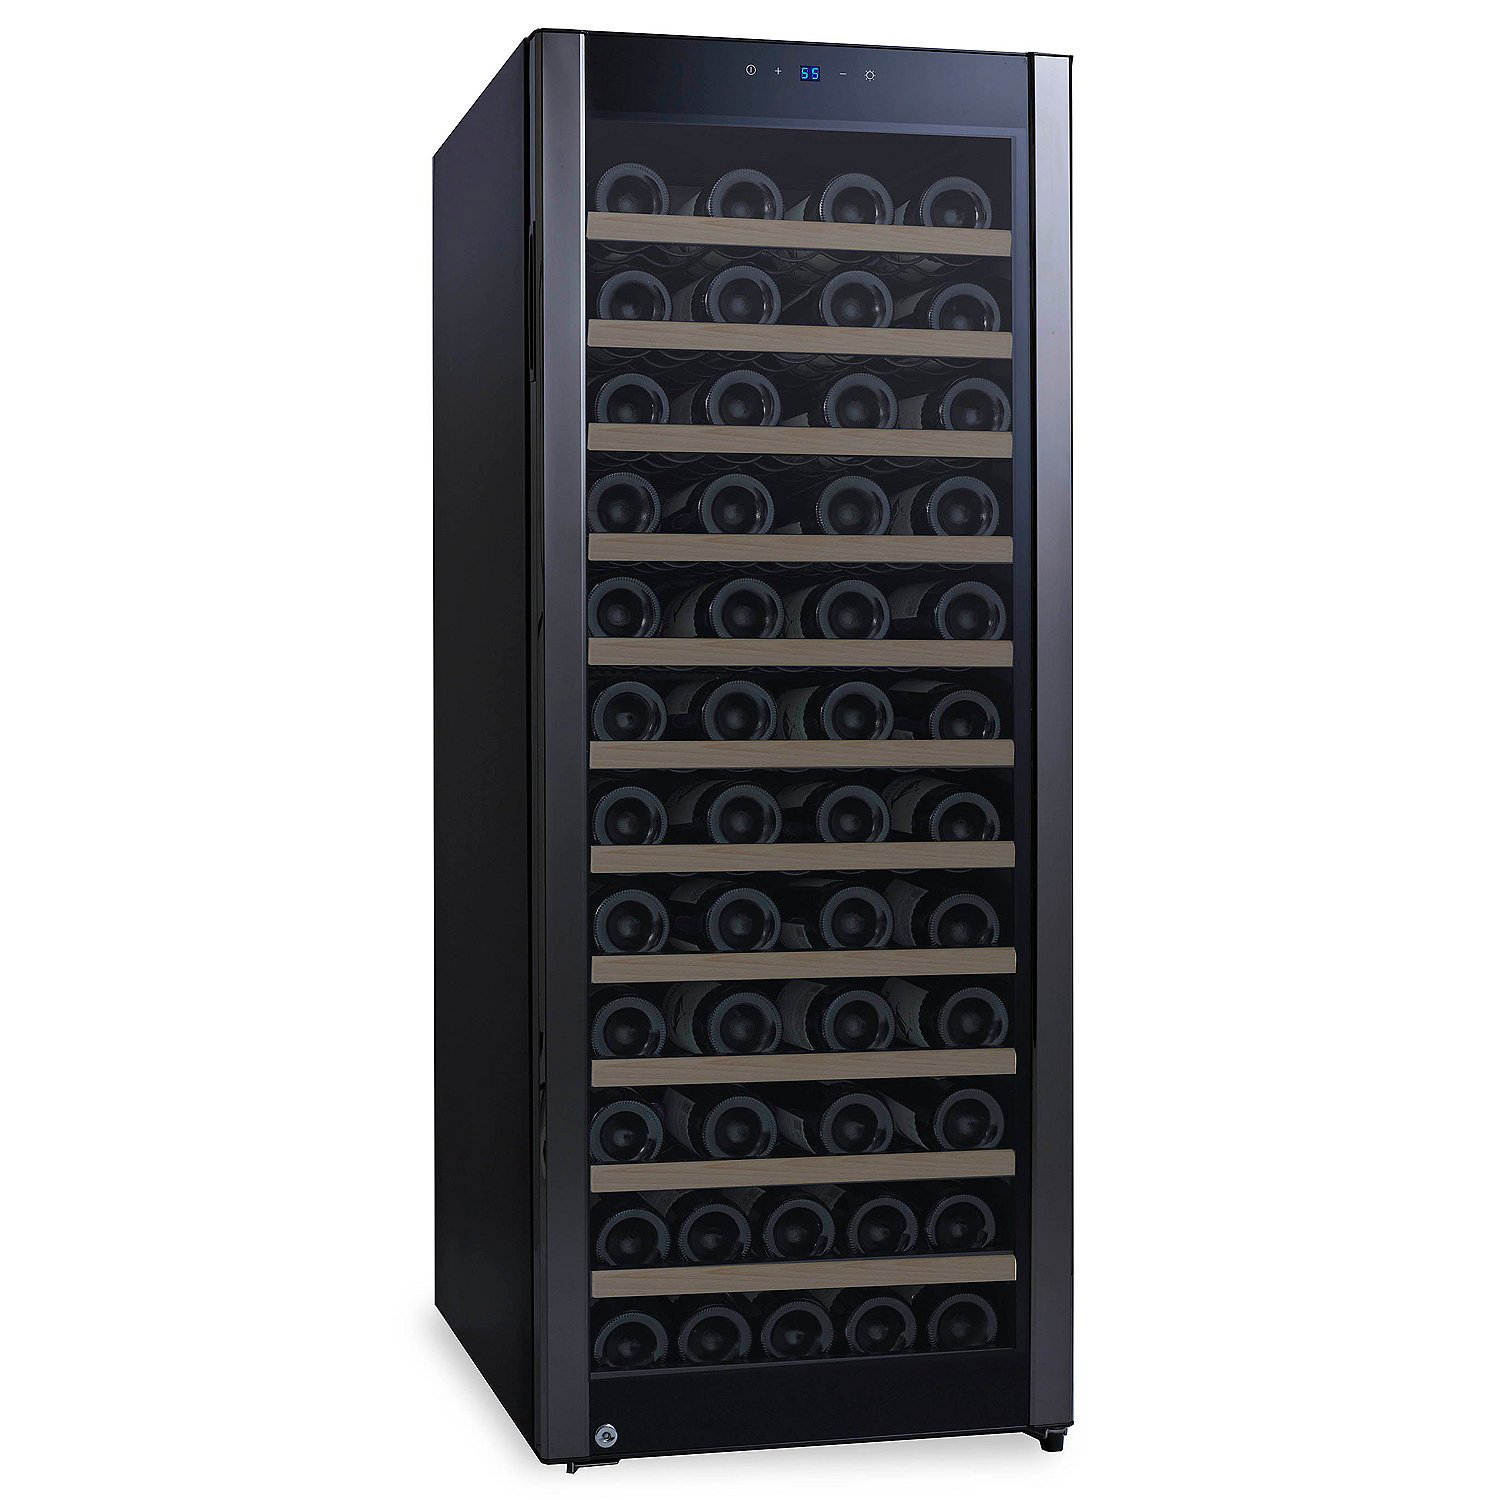 80-Bottle Evolution Series Wine Refrigerator Black Stainless Door - Natural Wood